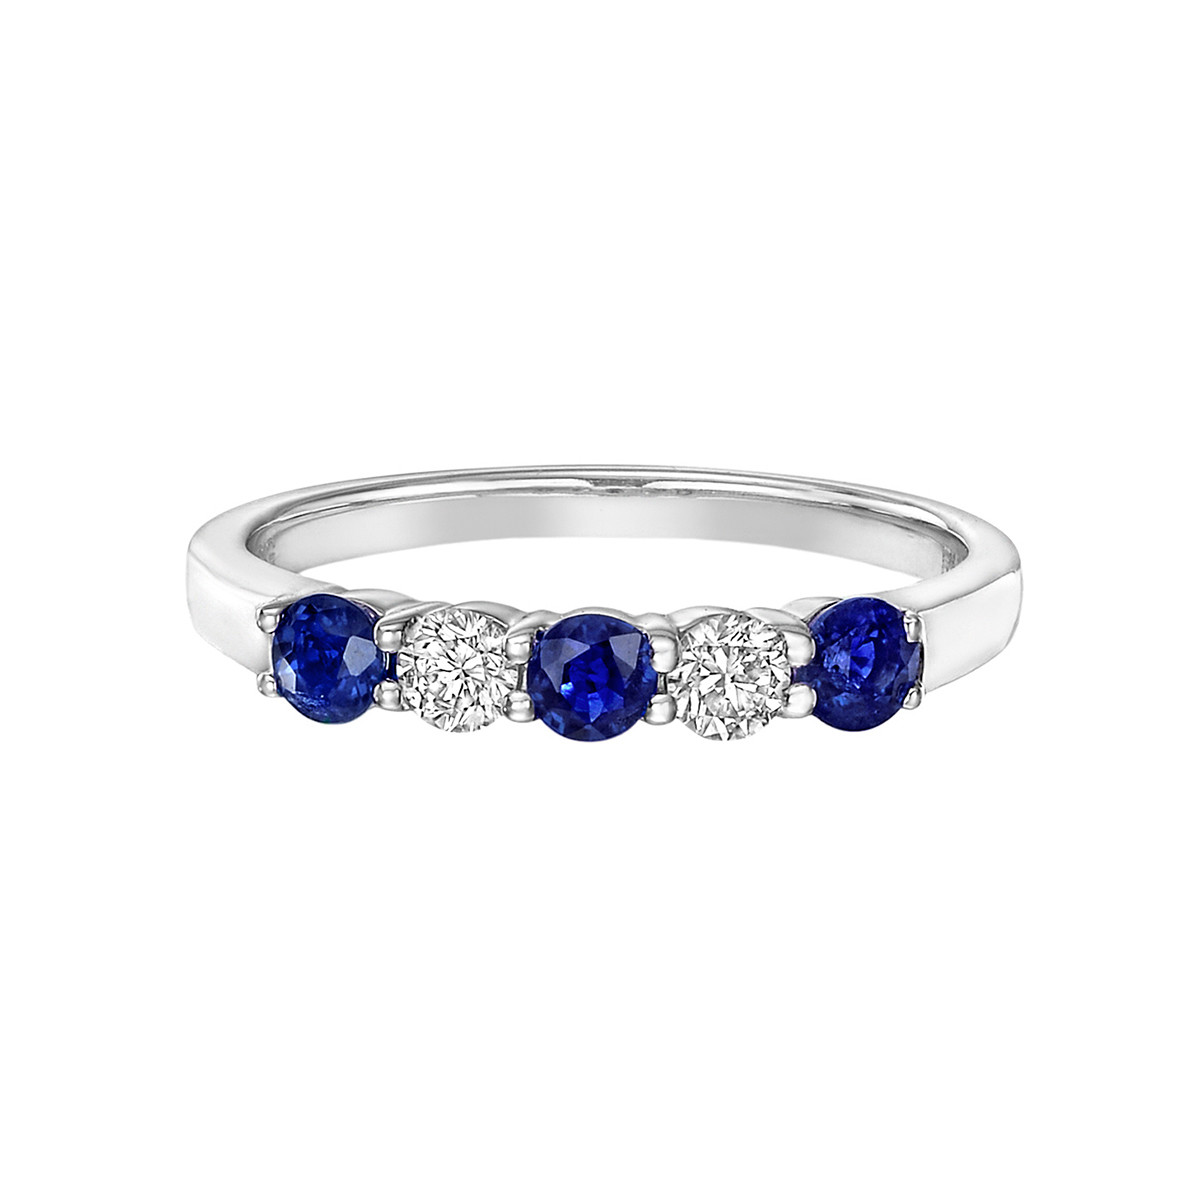 Five-Stone Sapphire & Diamond Band Ring